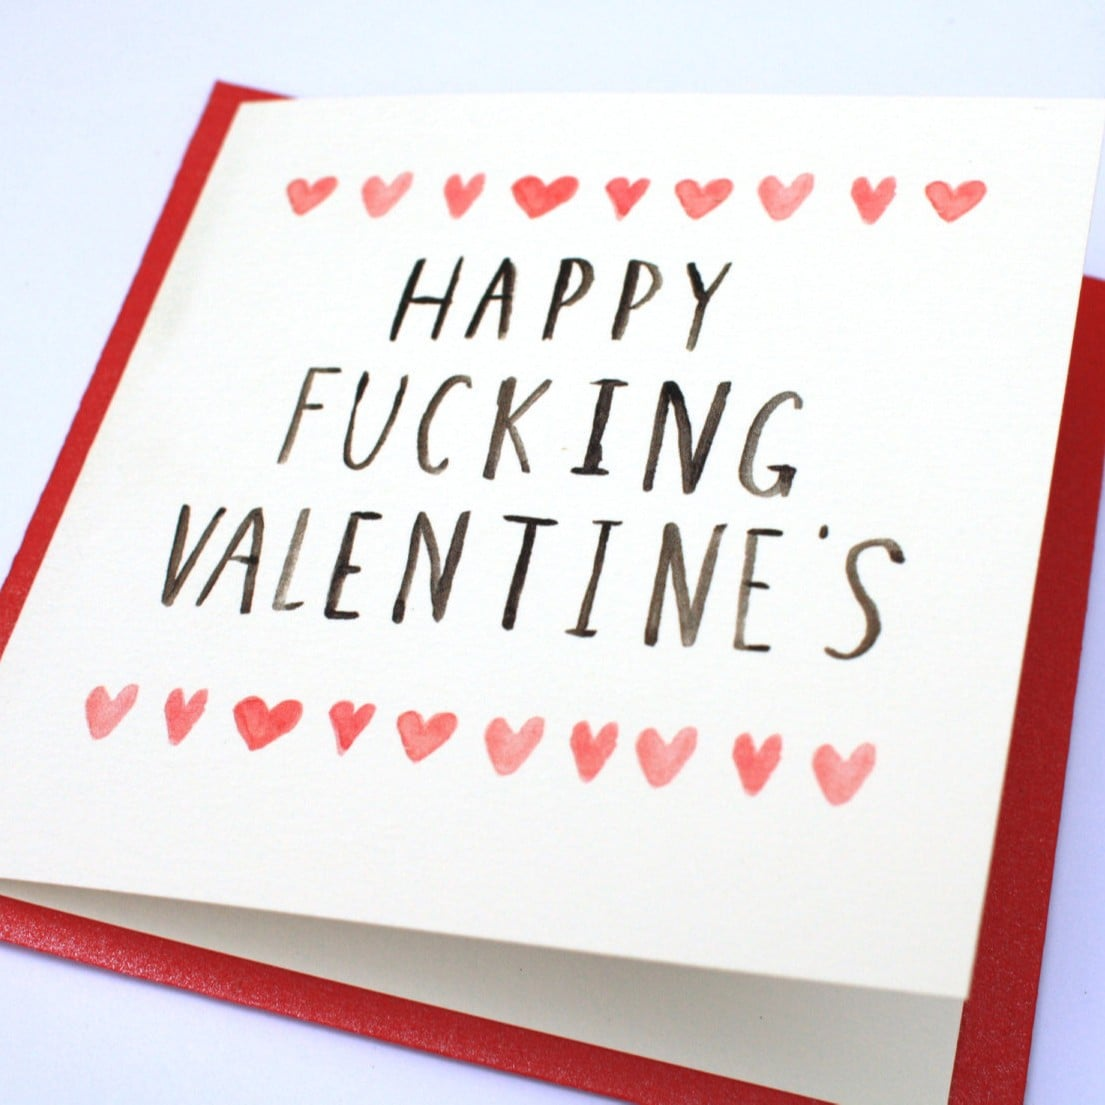 Curse Word Valentine's Day Gifts   POPSUGAR Family